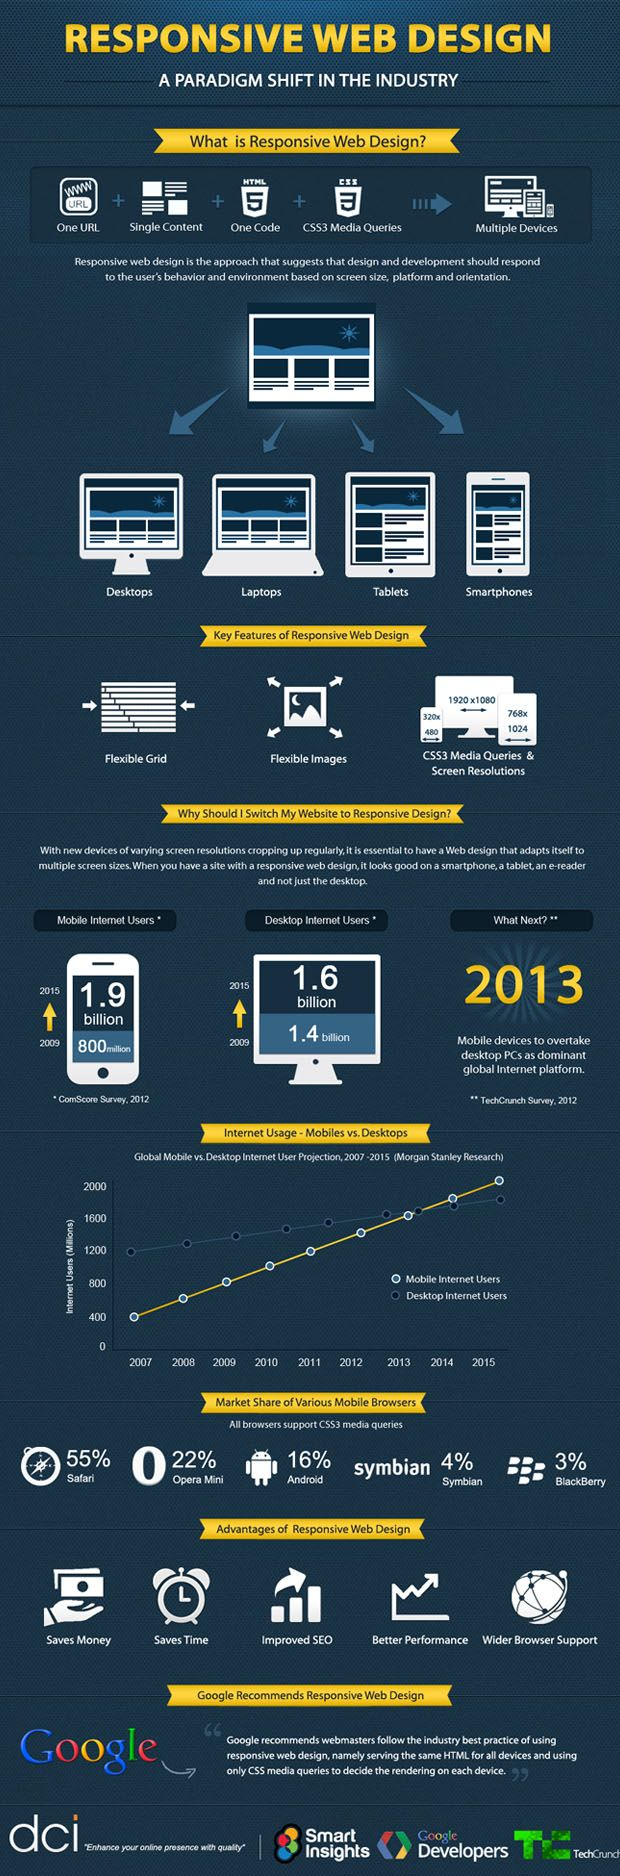 Responsive Web Design: A Paradigm Shift in the Industry – Infographic